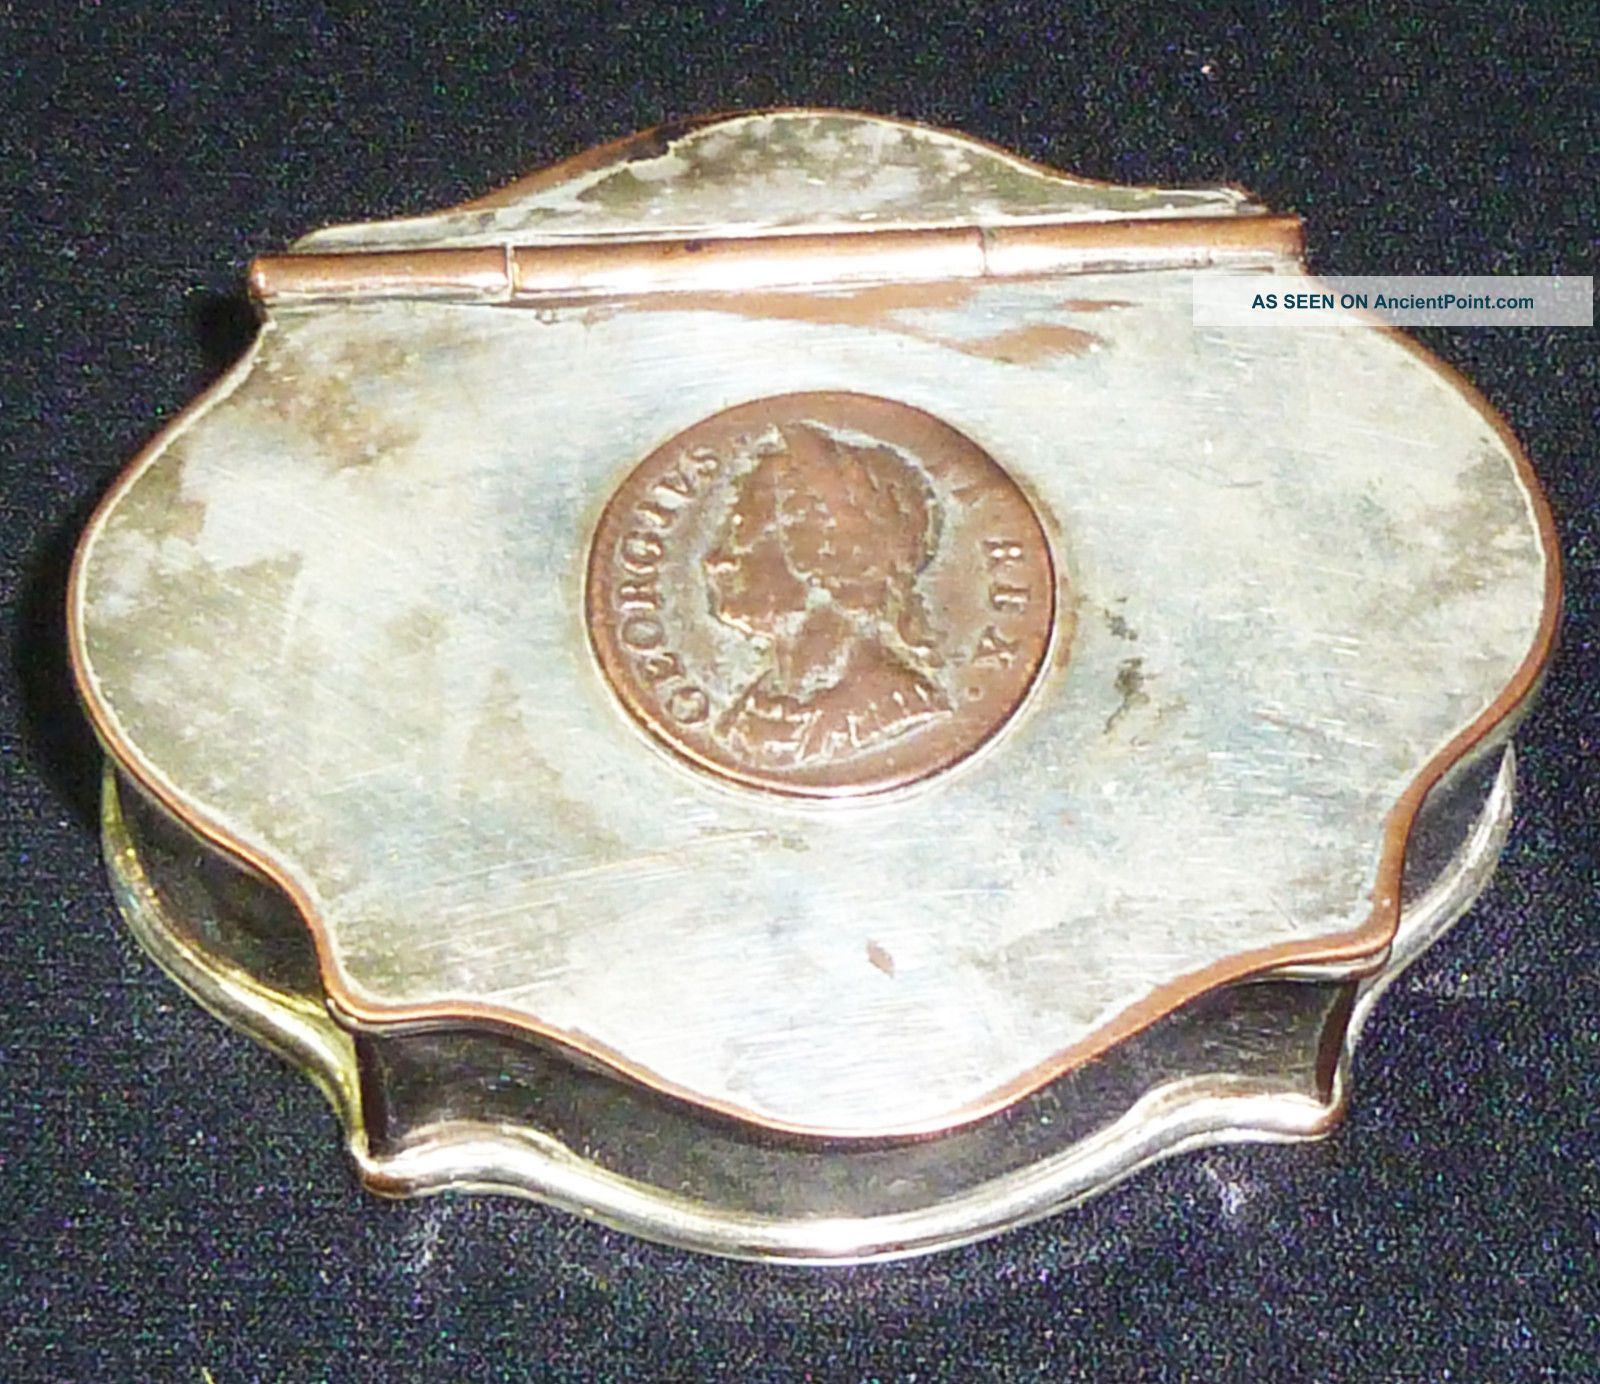 Antuiqe Georgian Sheffield Plate Snuff Box With Inset George Ii Coin.  Circa 1790 Pitchers & Jugs photo